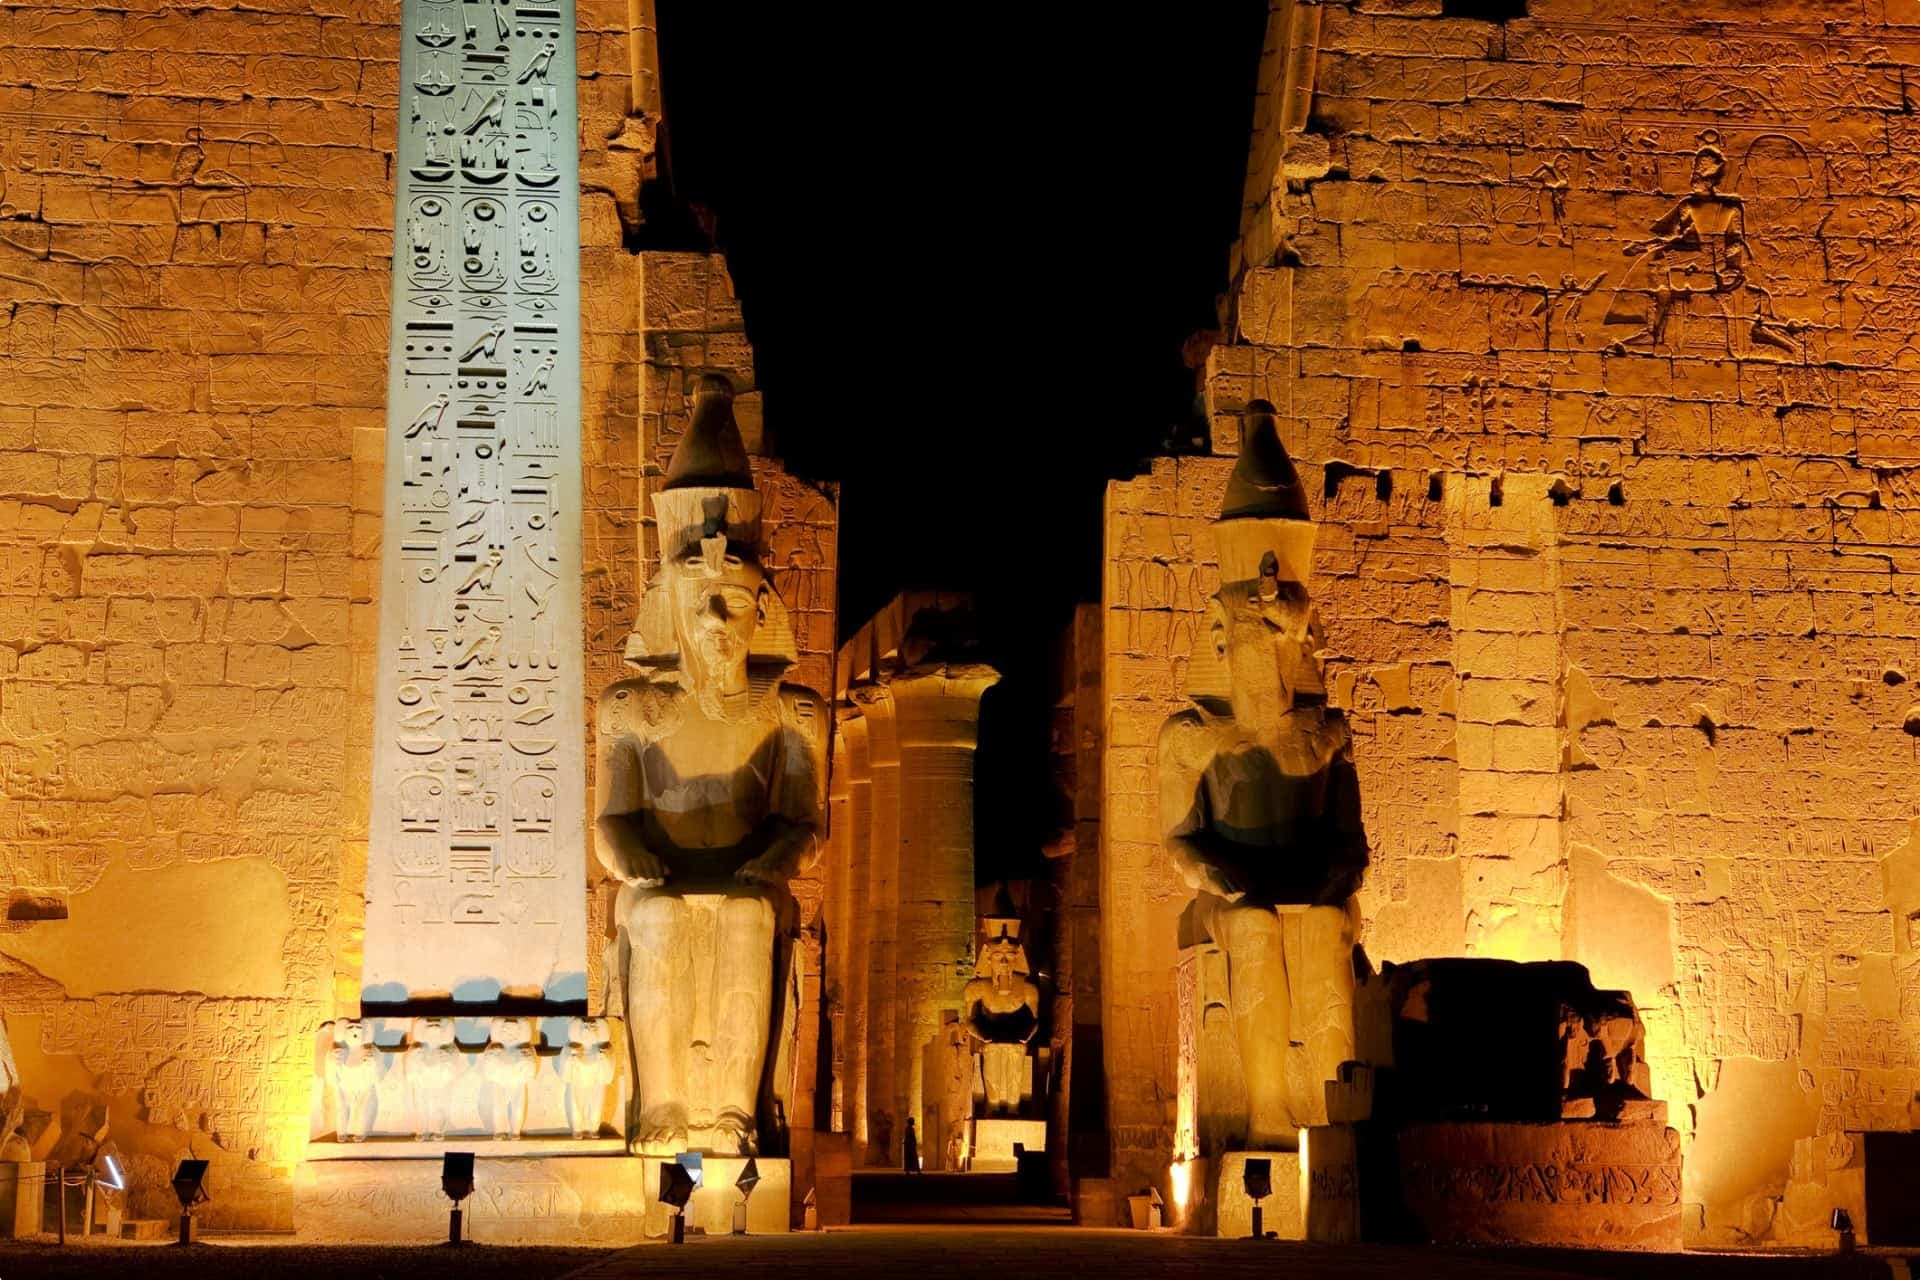 Entrance to the Temple of Luxor, Egypt